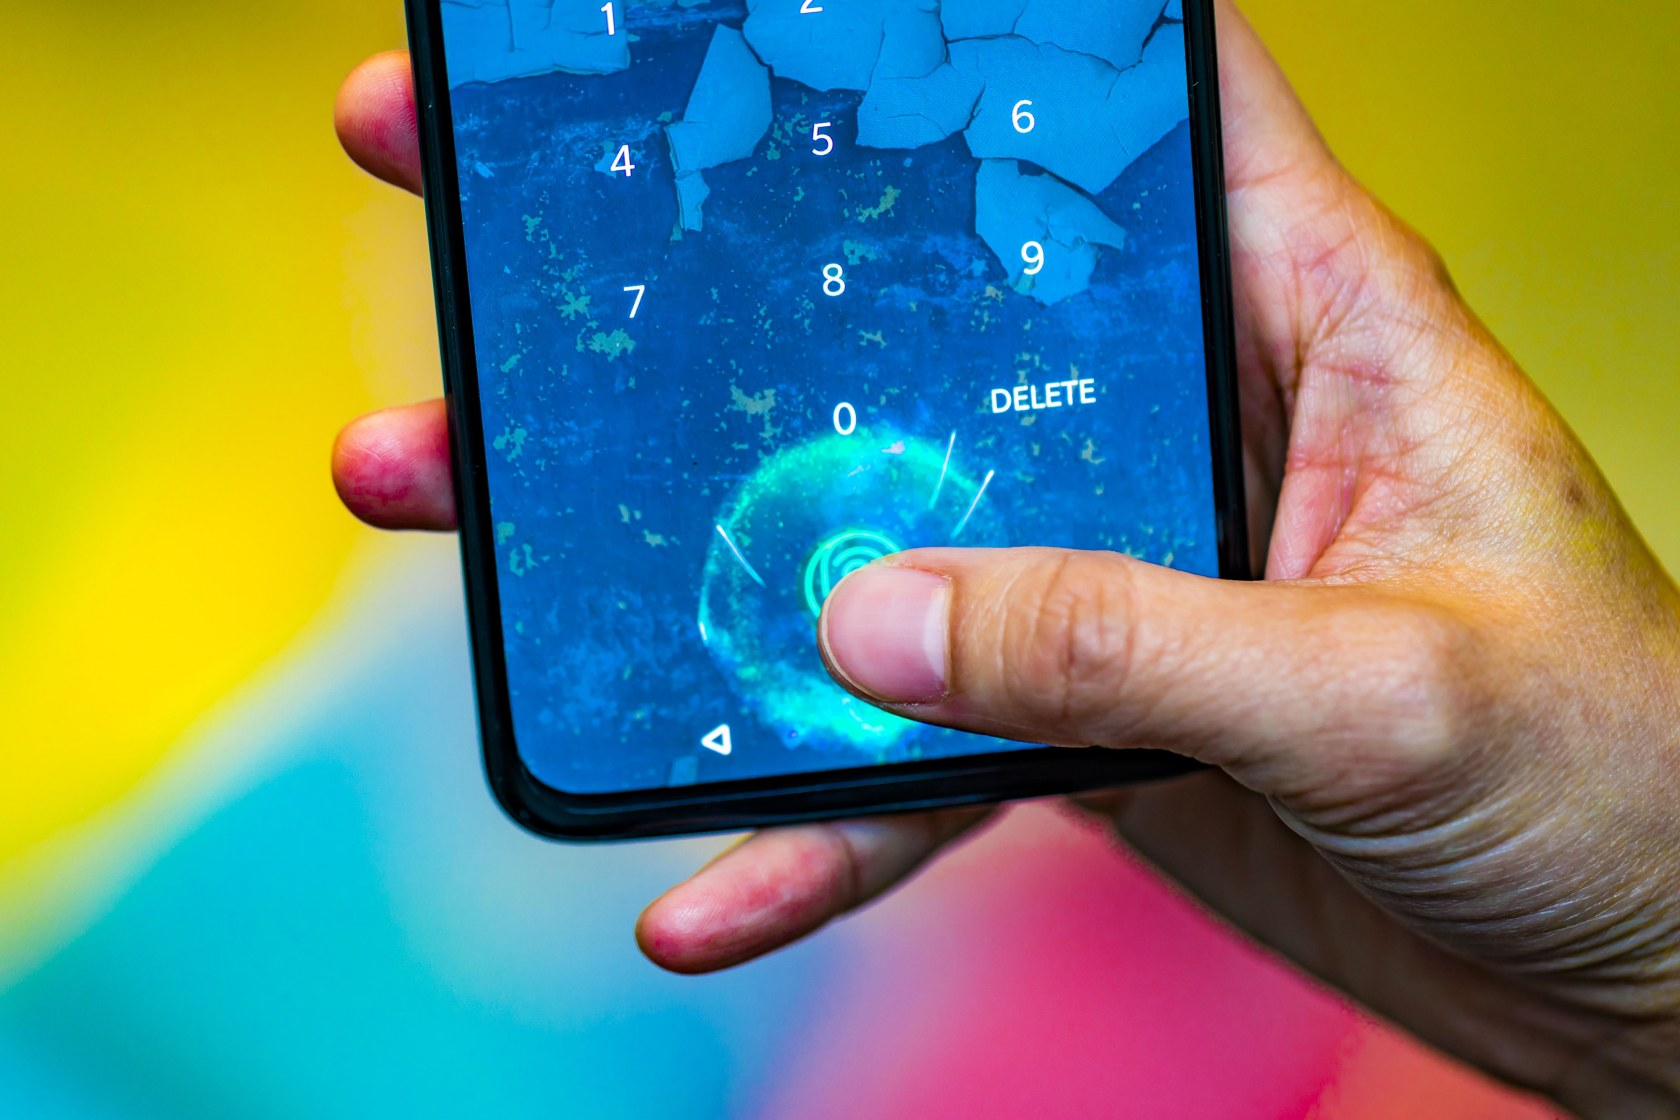 Leaked OnePlus 7 images show notch-less design and pop-up camera